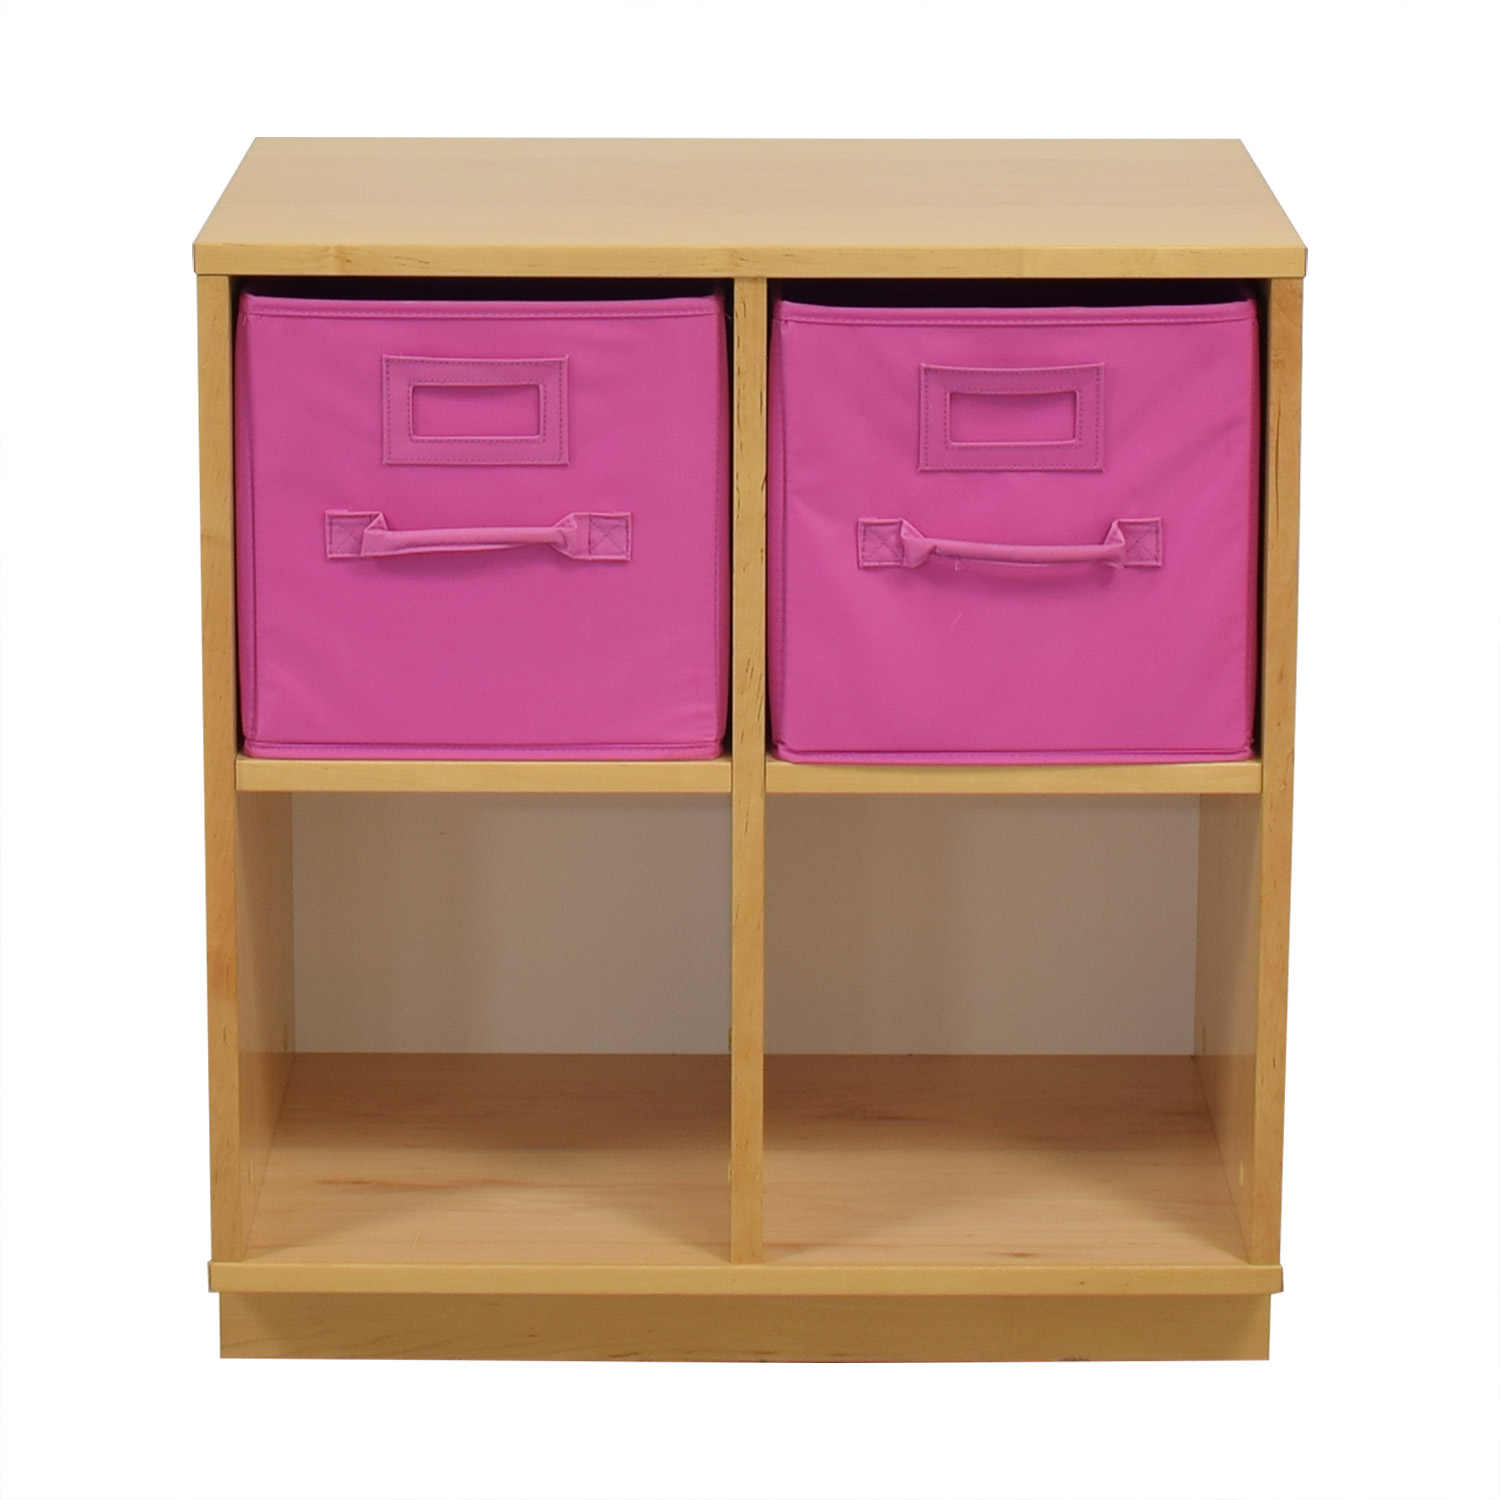 Williams Sonoma Williams Sonoma Cube Storage Units with Bins pa